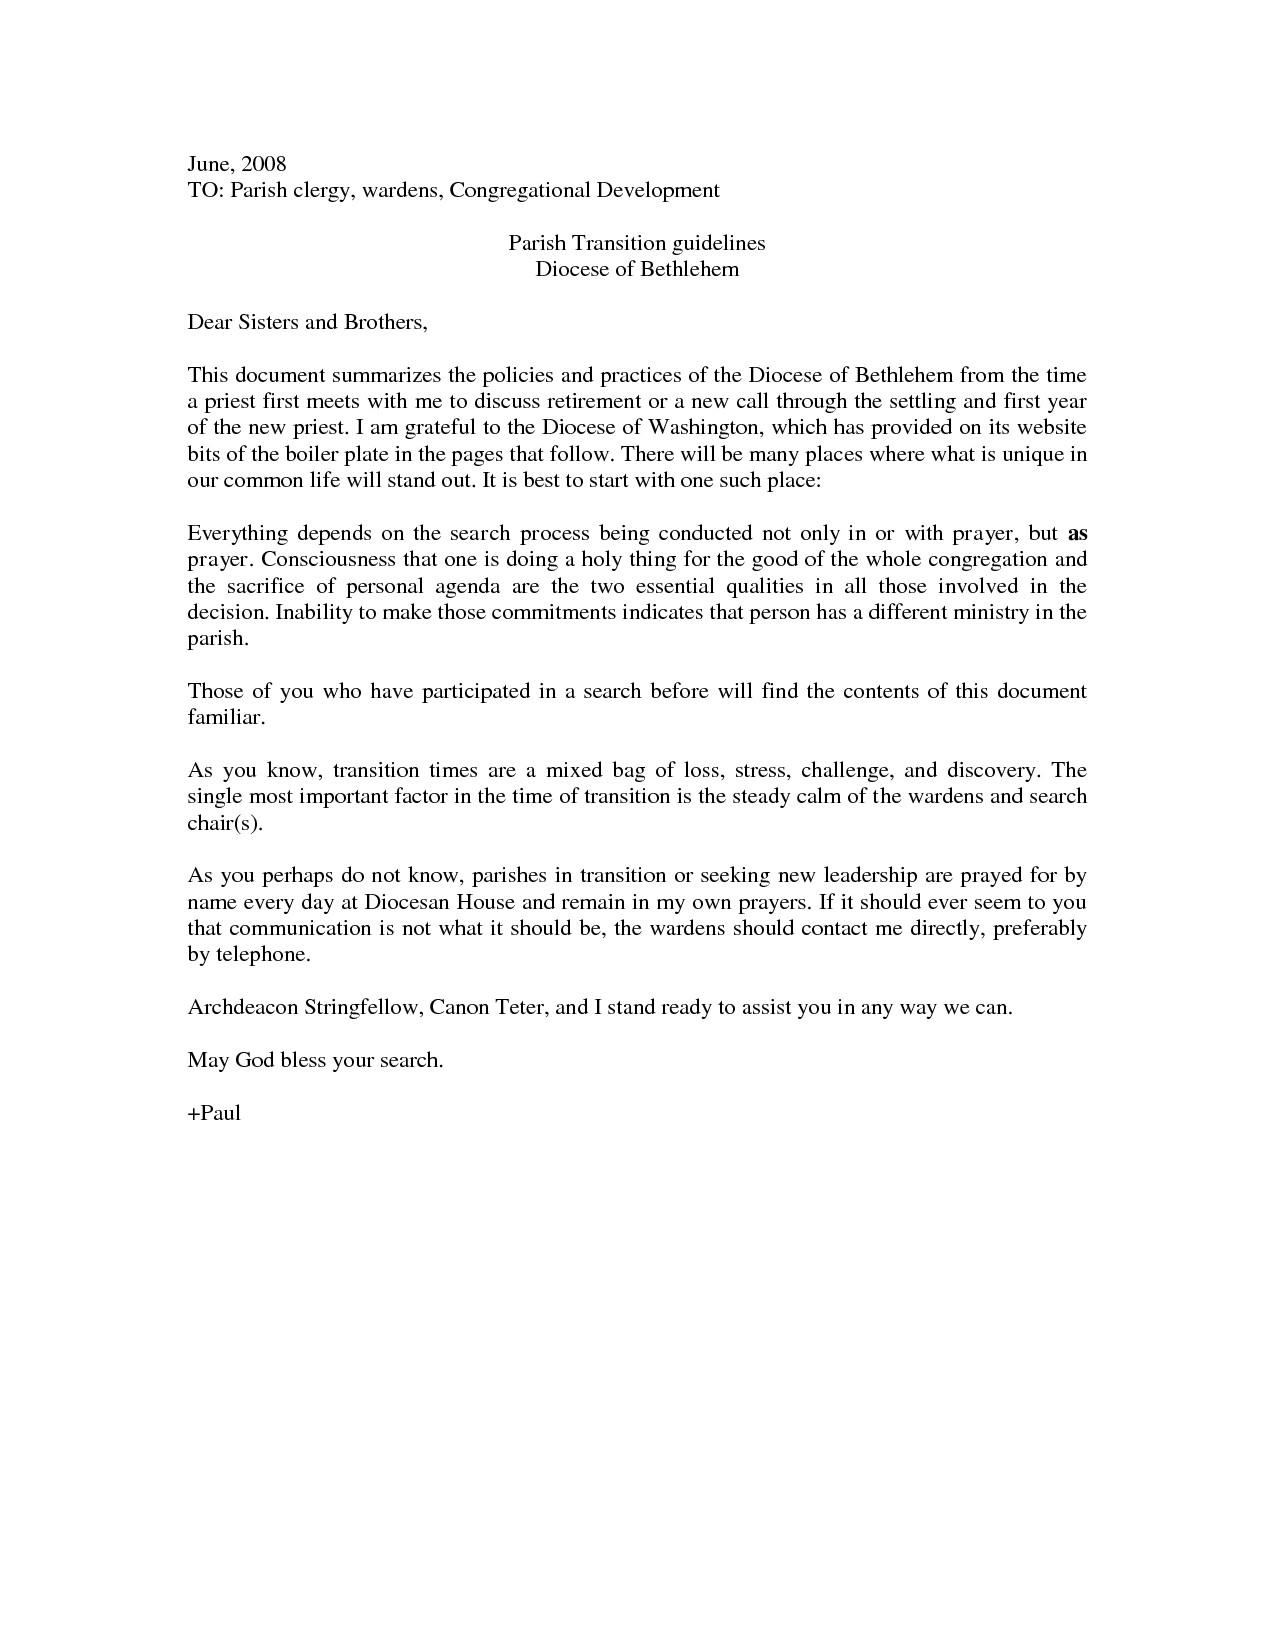 Retirement Letter to Coworkers Retirement Farewell Letter Samplesgoodbye Letter formal